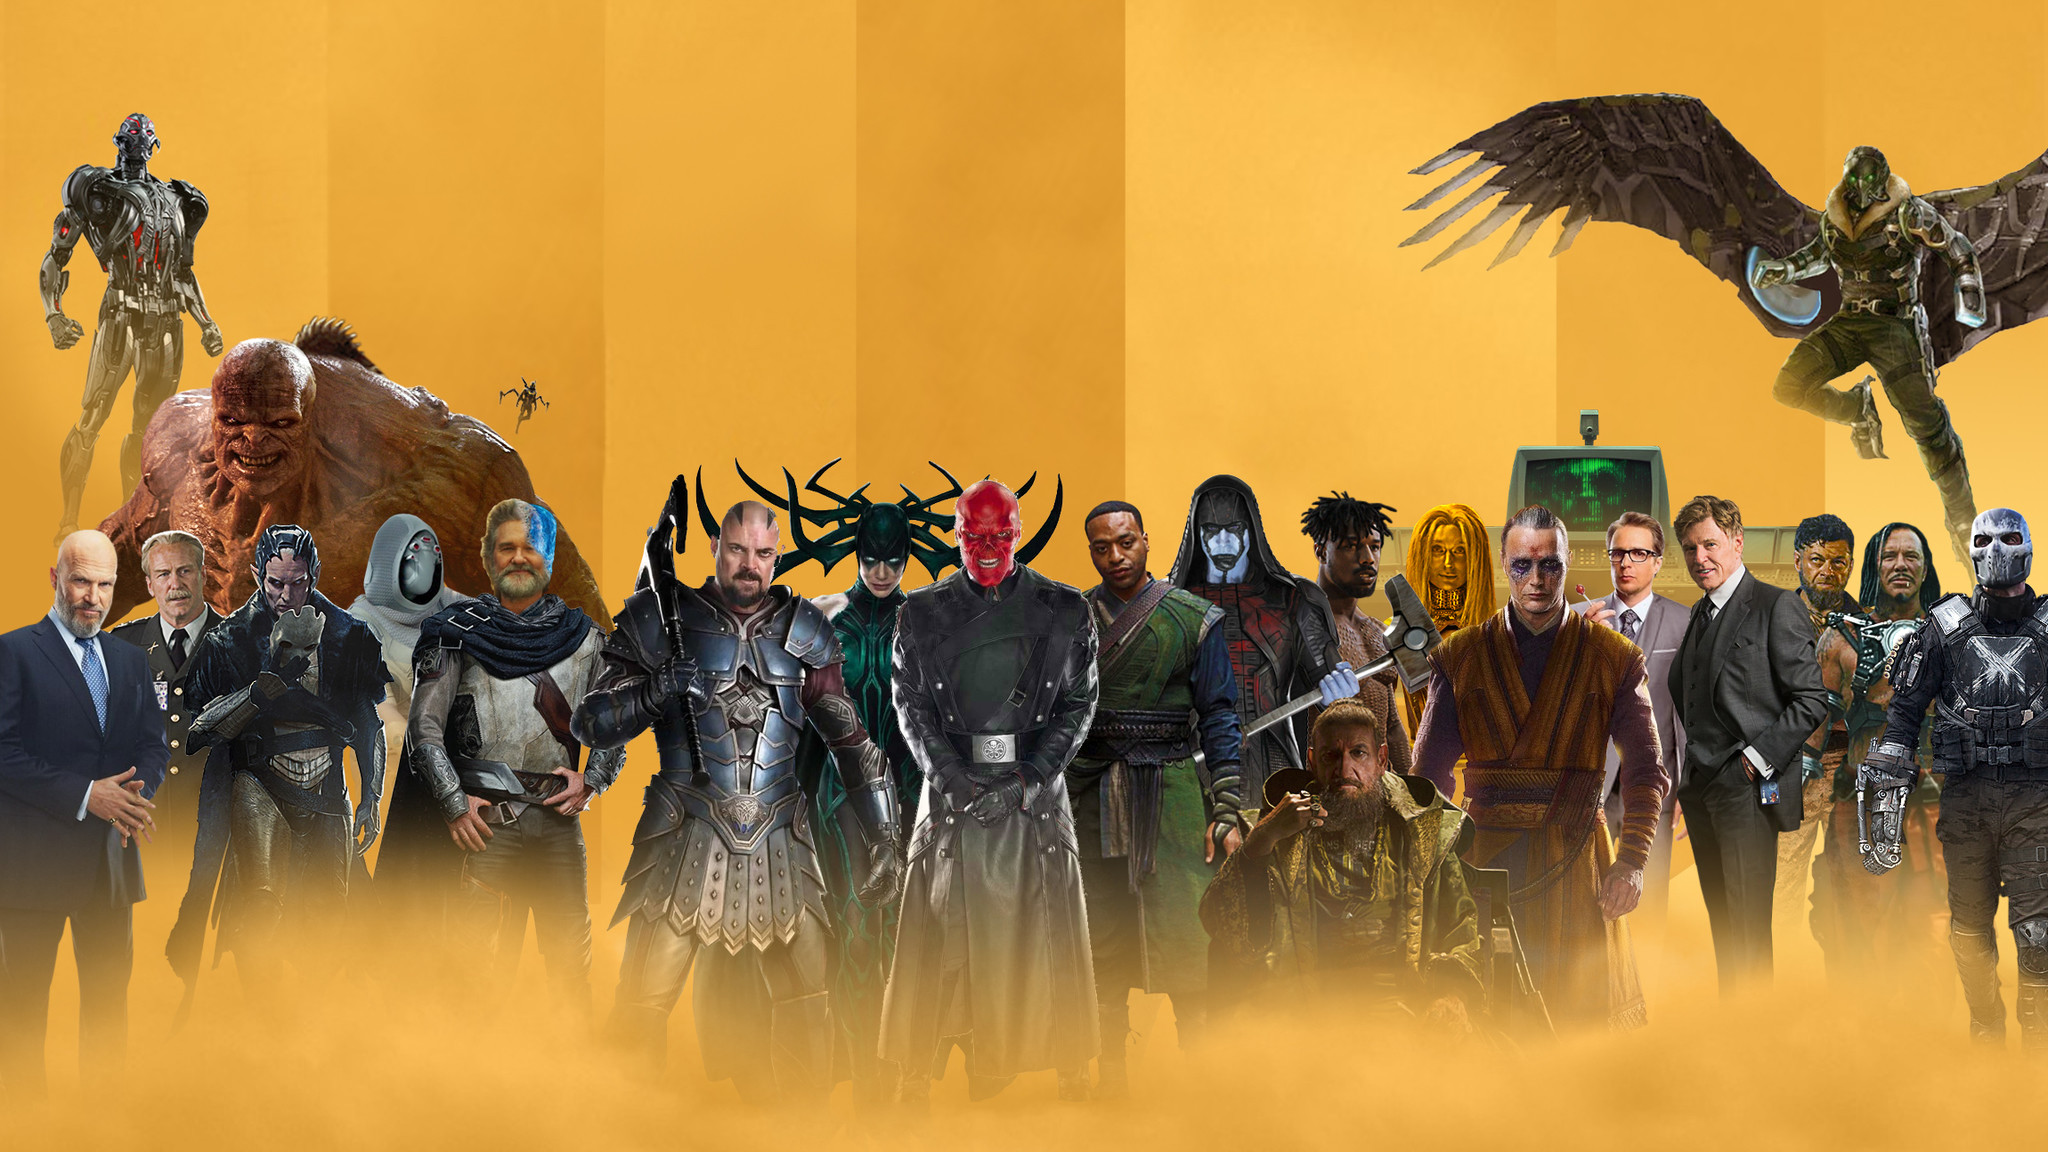 2048x1152 marvel-studios-villains-10-years-anniversary-s2.jpg